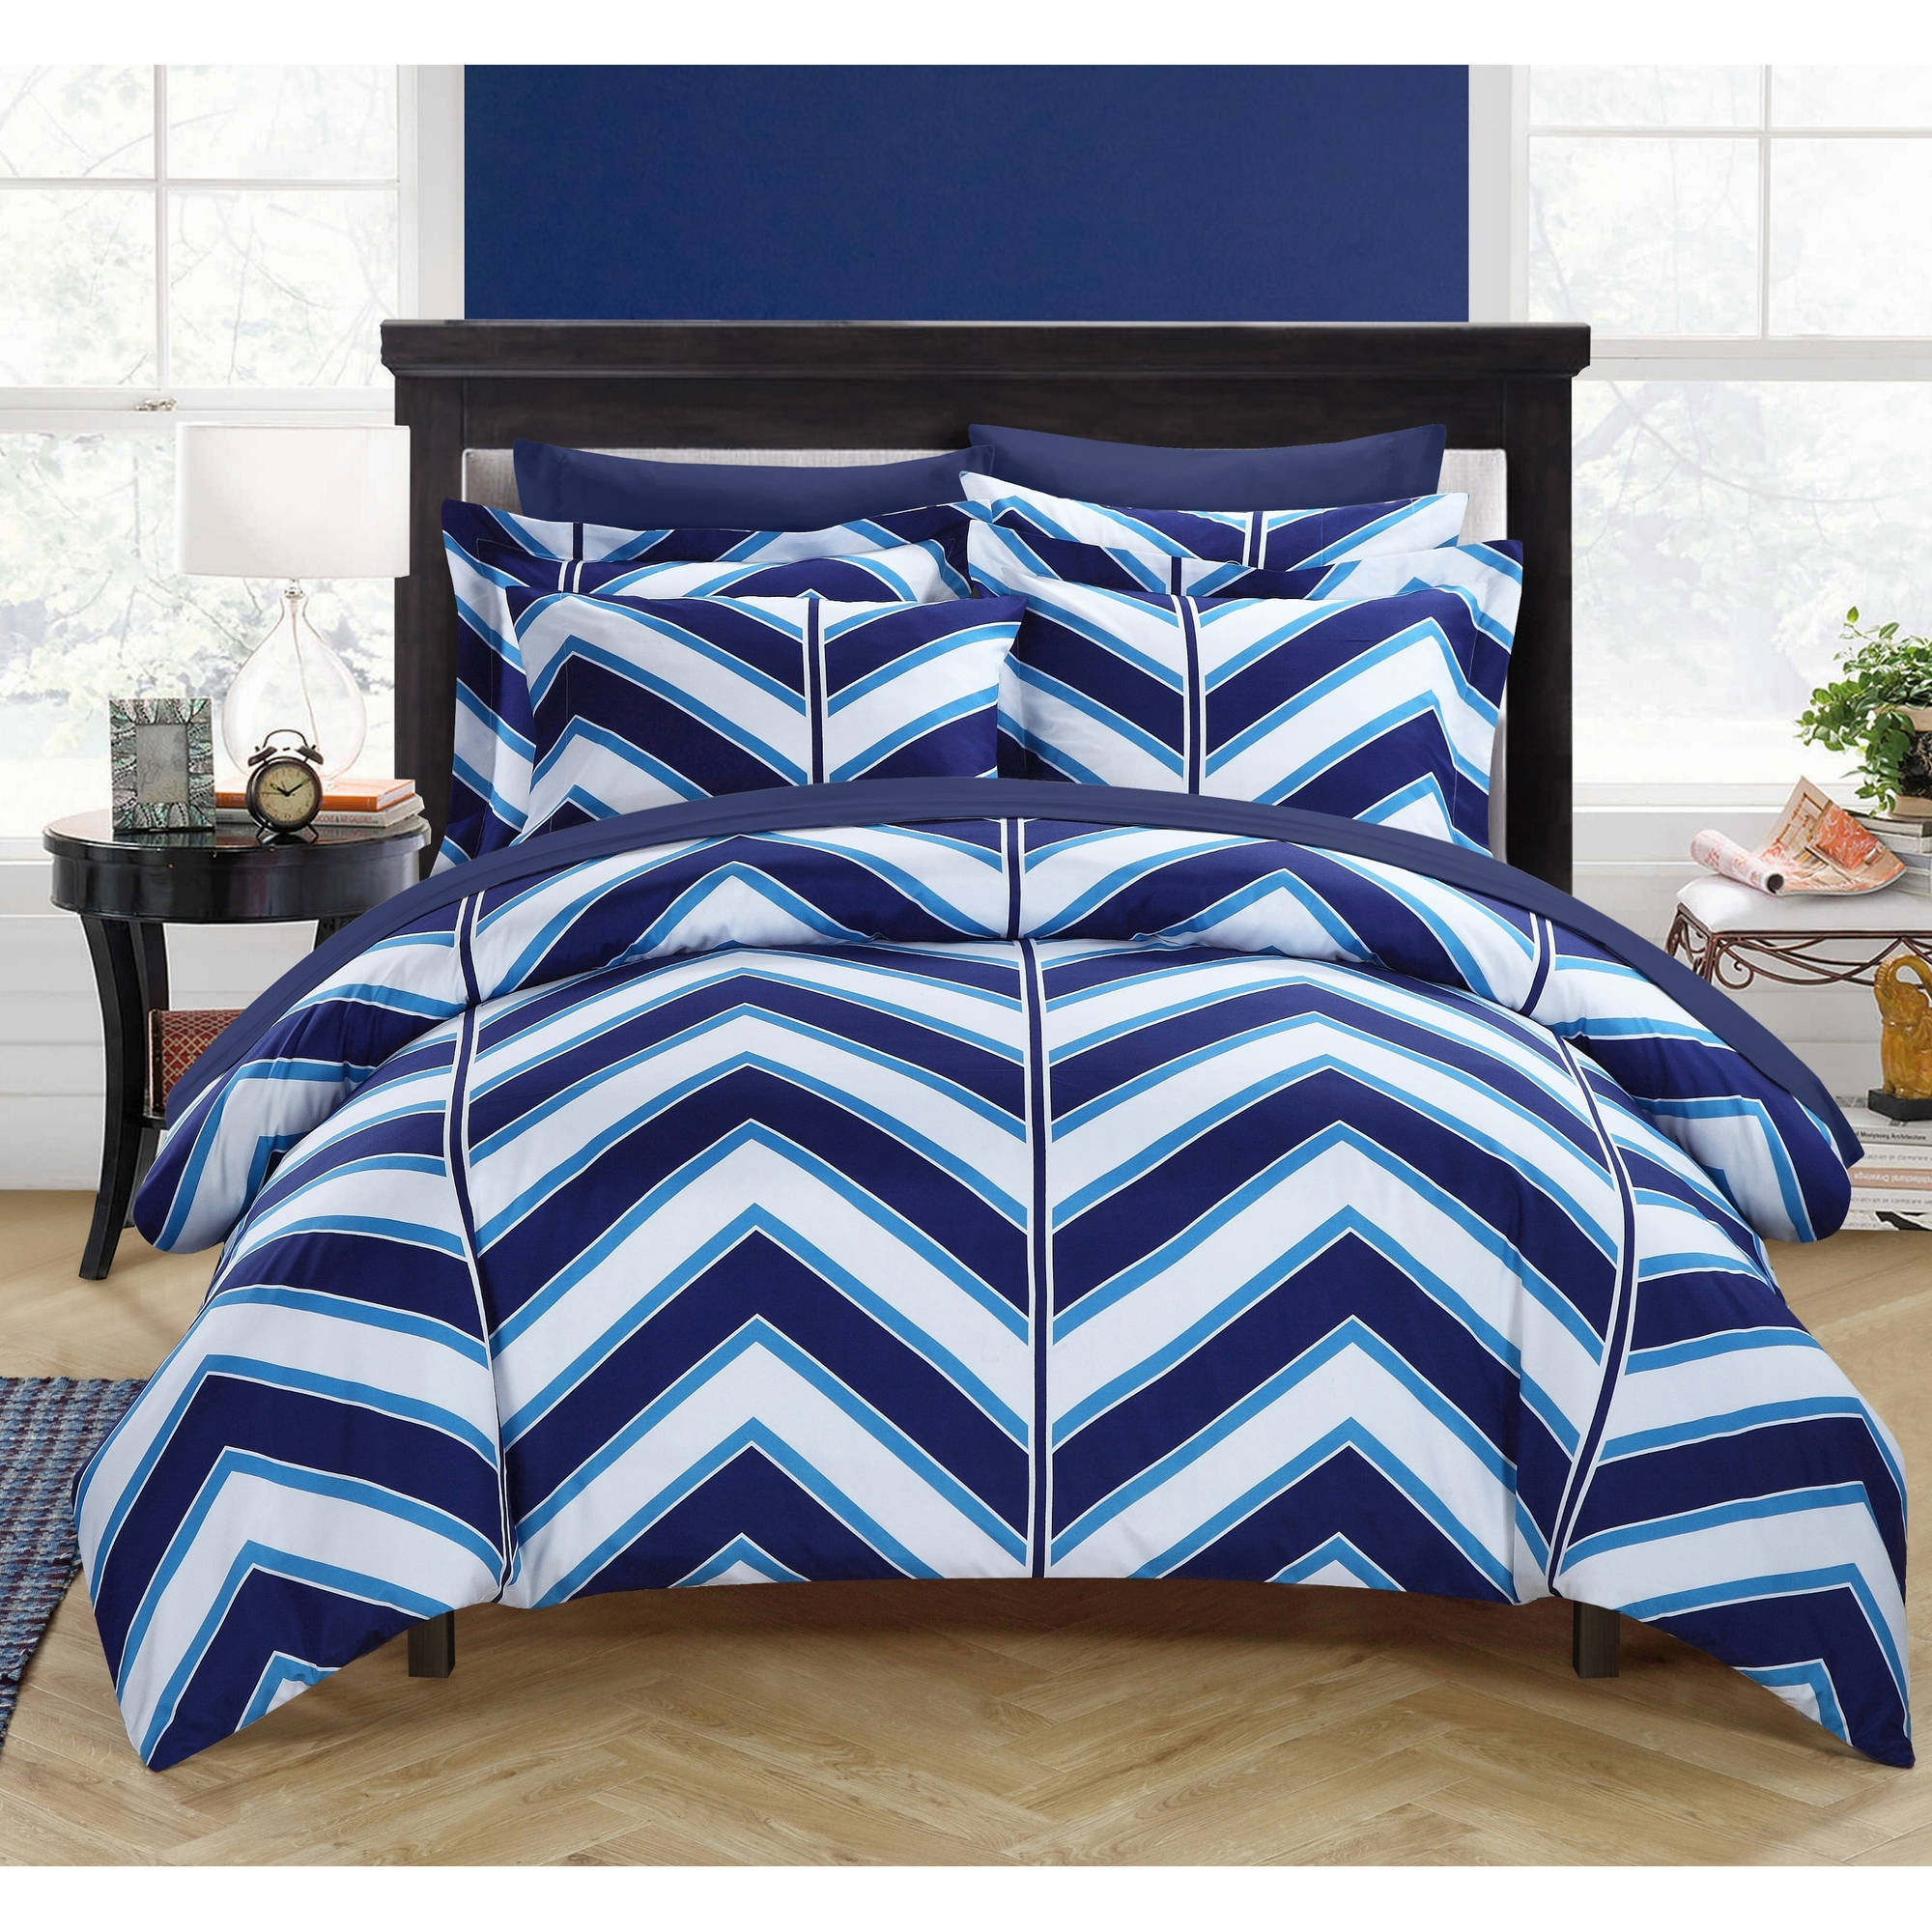 Dallas 3-Piece Bedding Duvet Cover Set